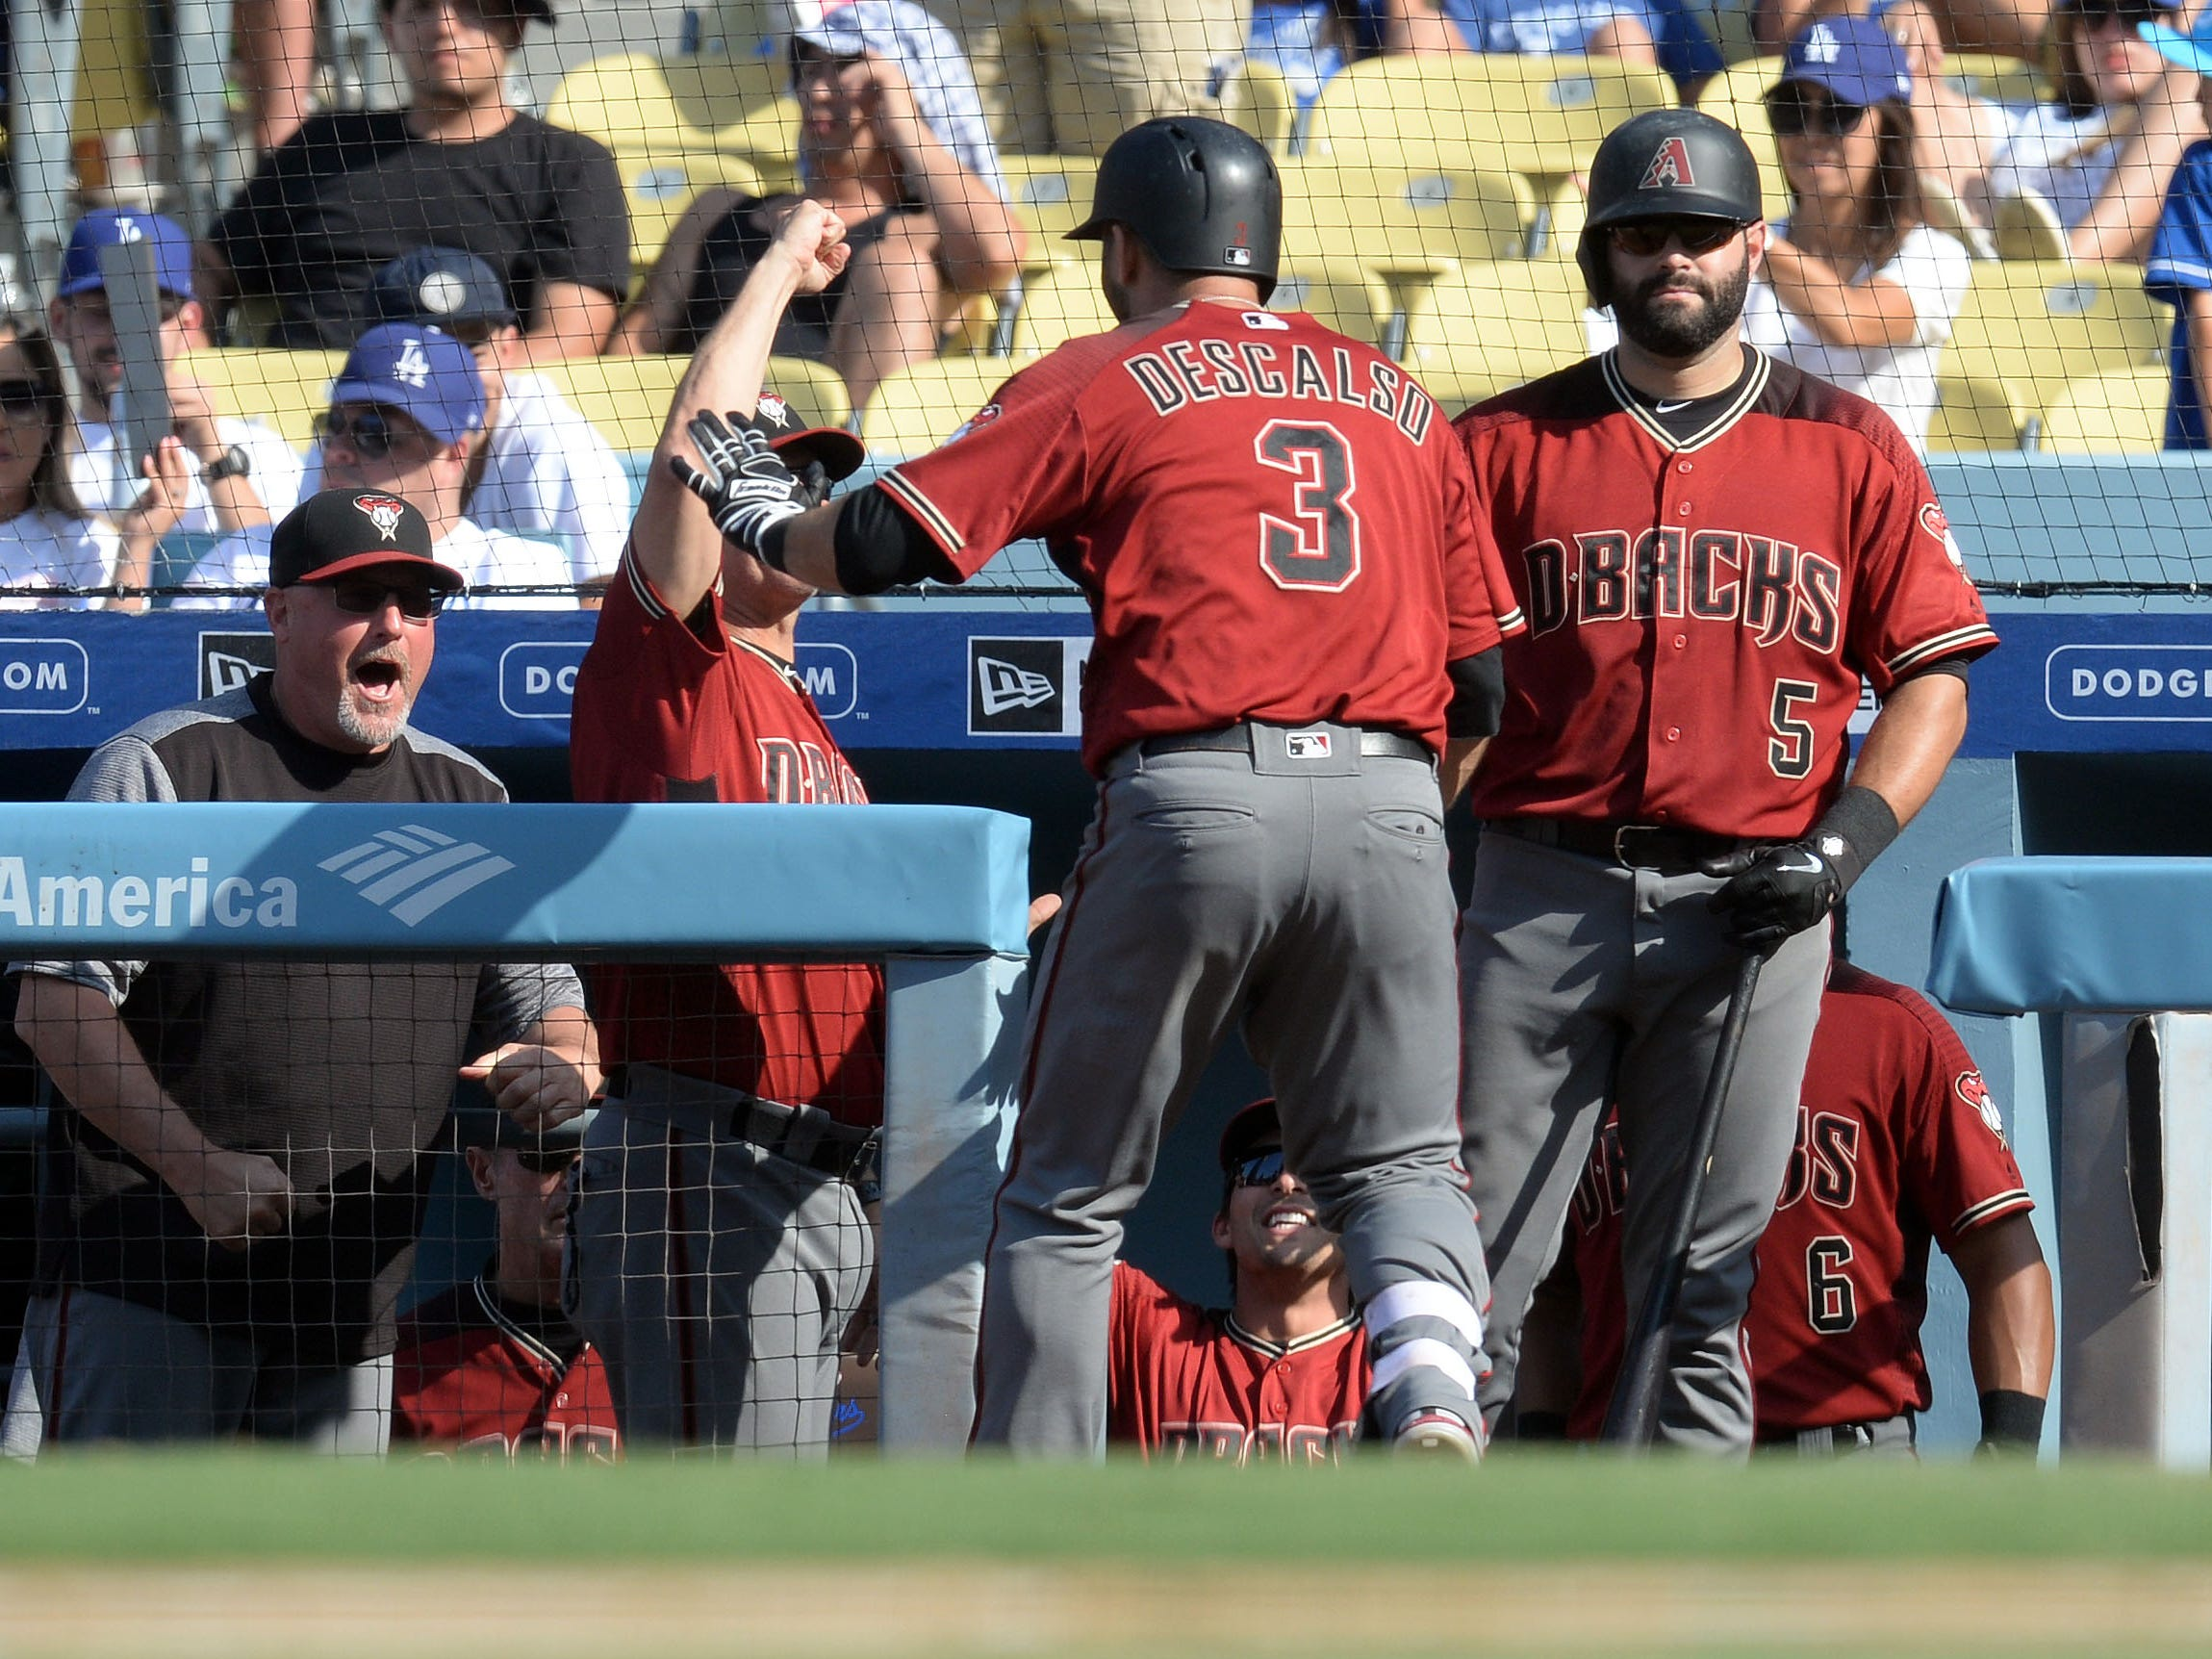 September 2, 2018; Los Angeles, CA, USA; Arizona Diamondbacks second baseman Daniel Descalso (3) is greeted by manager Torey Lovullo (17) after hitting a solo home run against the Los Angeles Dodgers in the ninth inning at Dodger Stadium. Mandatory Credit: Gary A. Vasquez-USA TODAY Sports